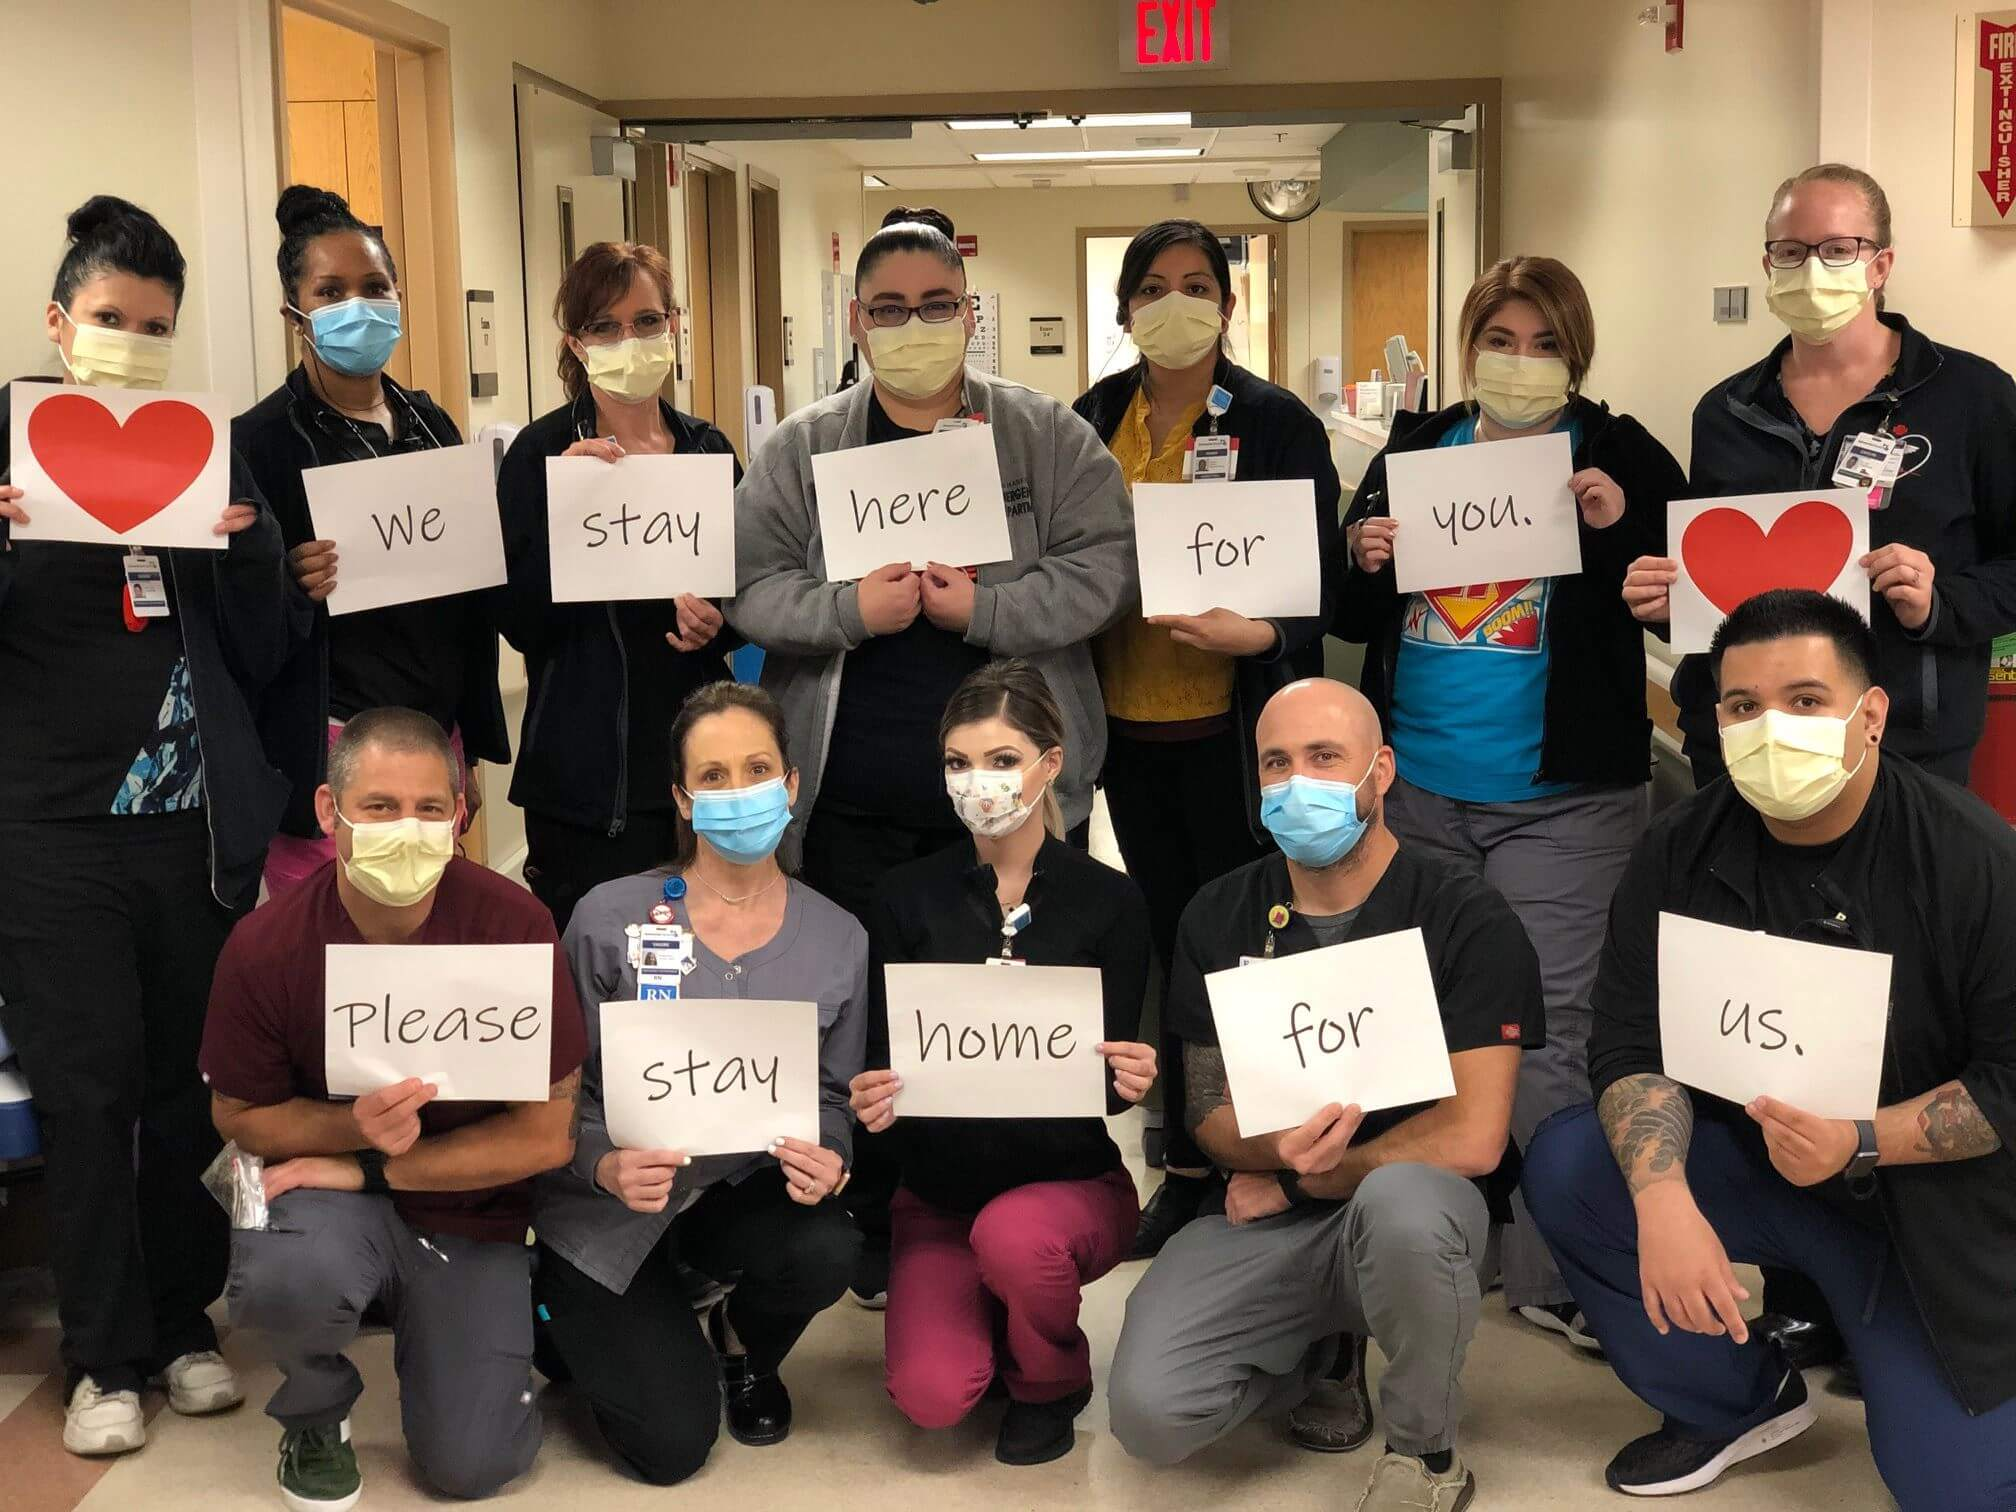 health care workers asking everyone to stay home